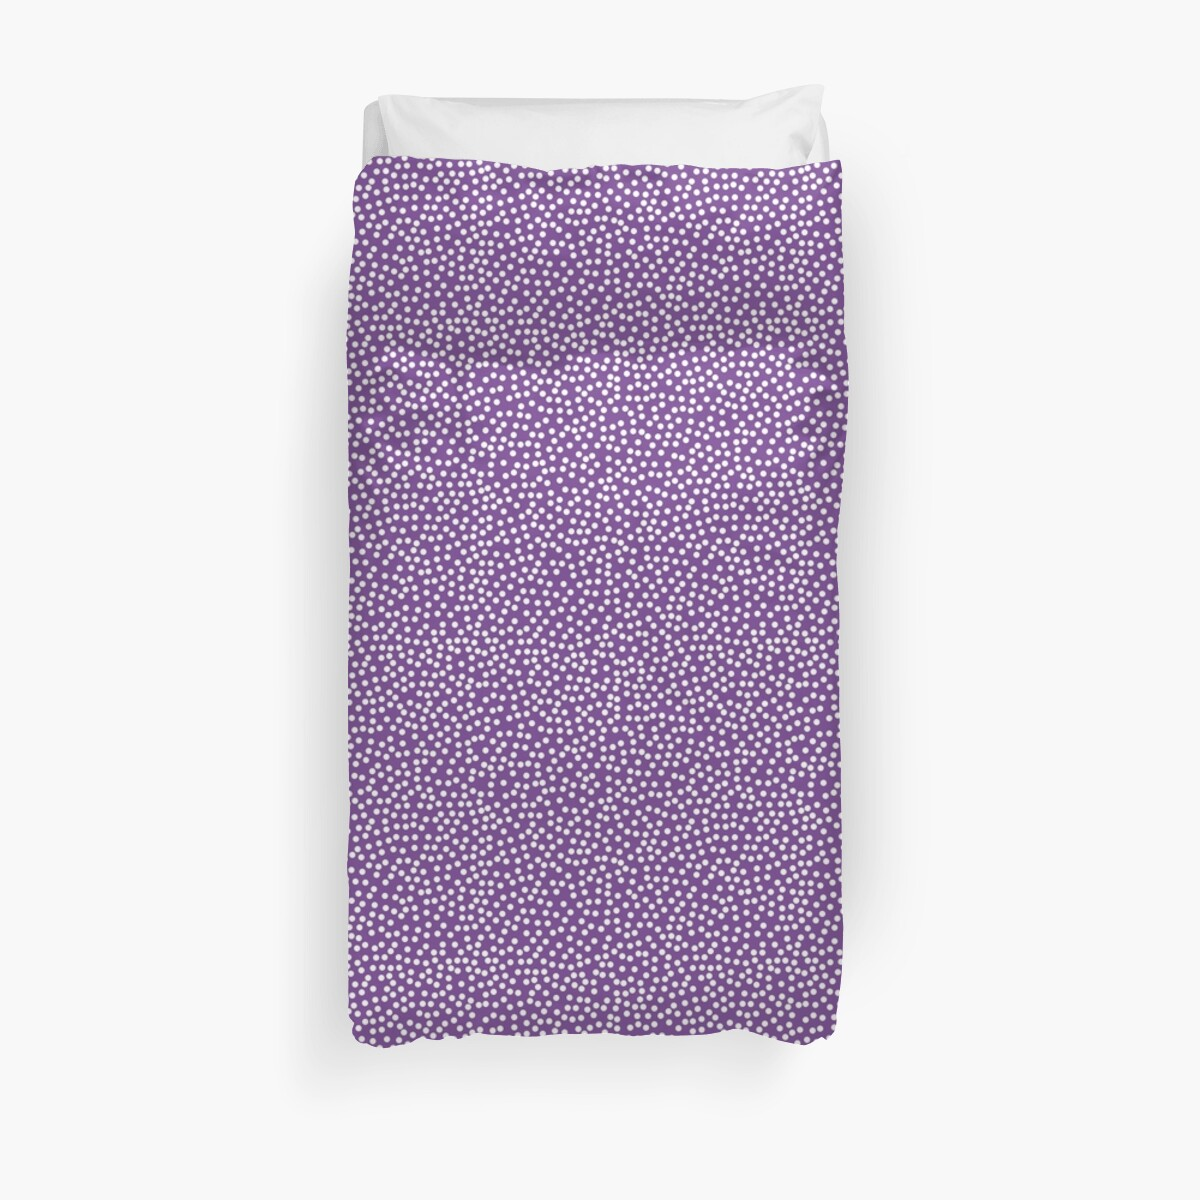 Quot Classic Baby Polka Dots In Purple Violet Quot Duvet Covers